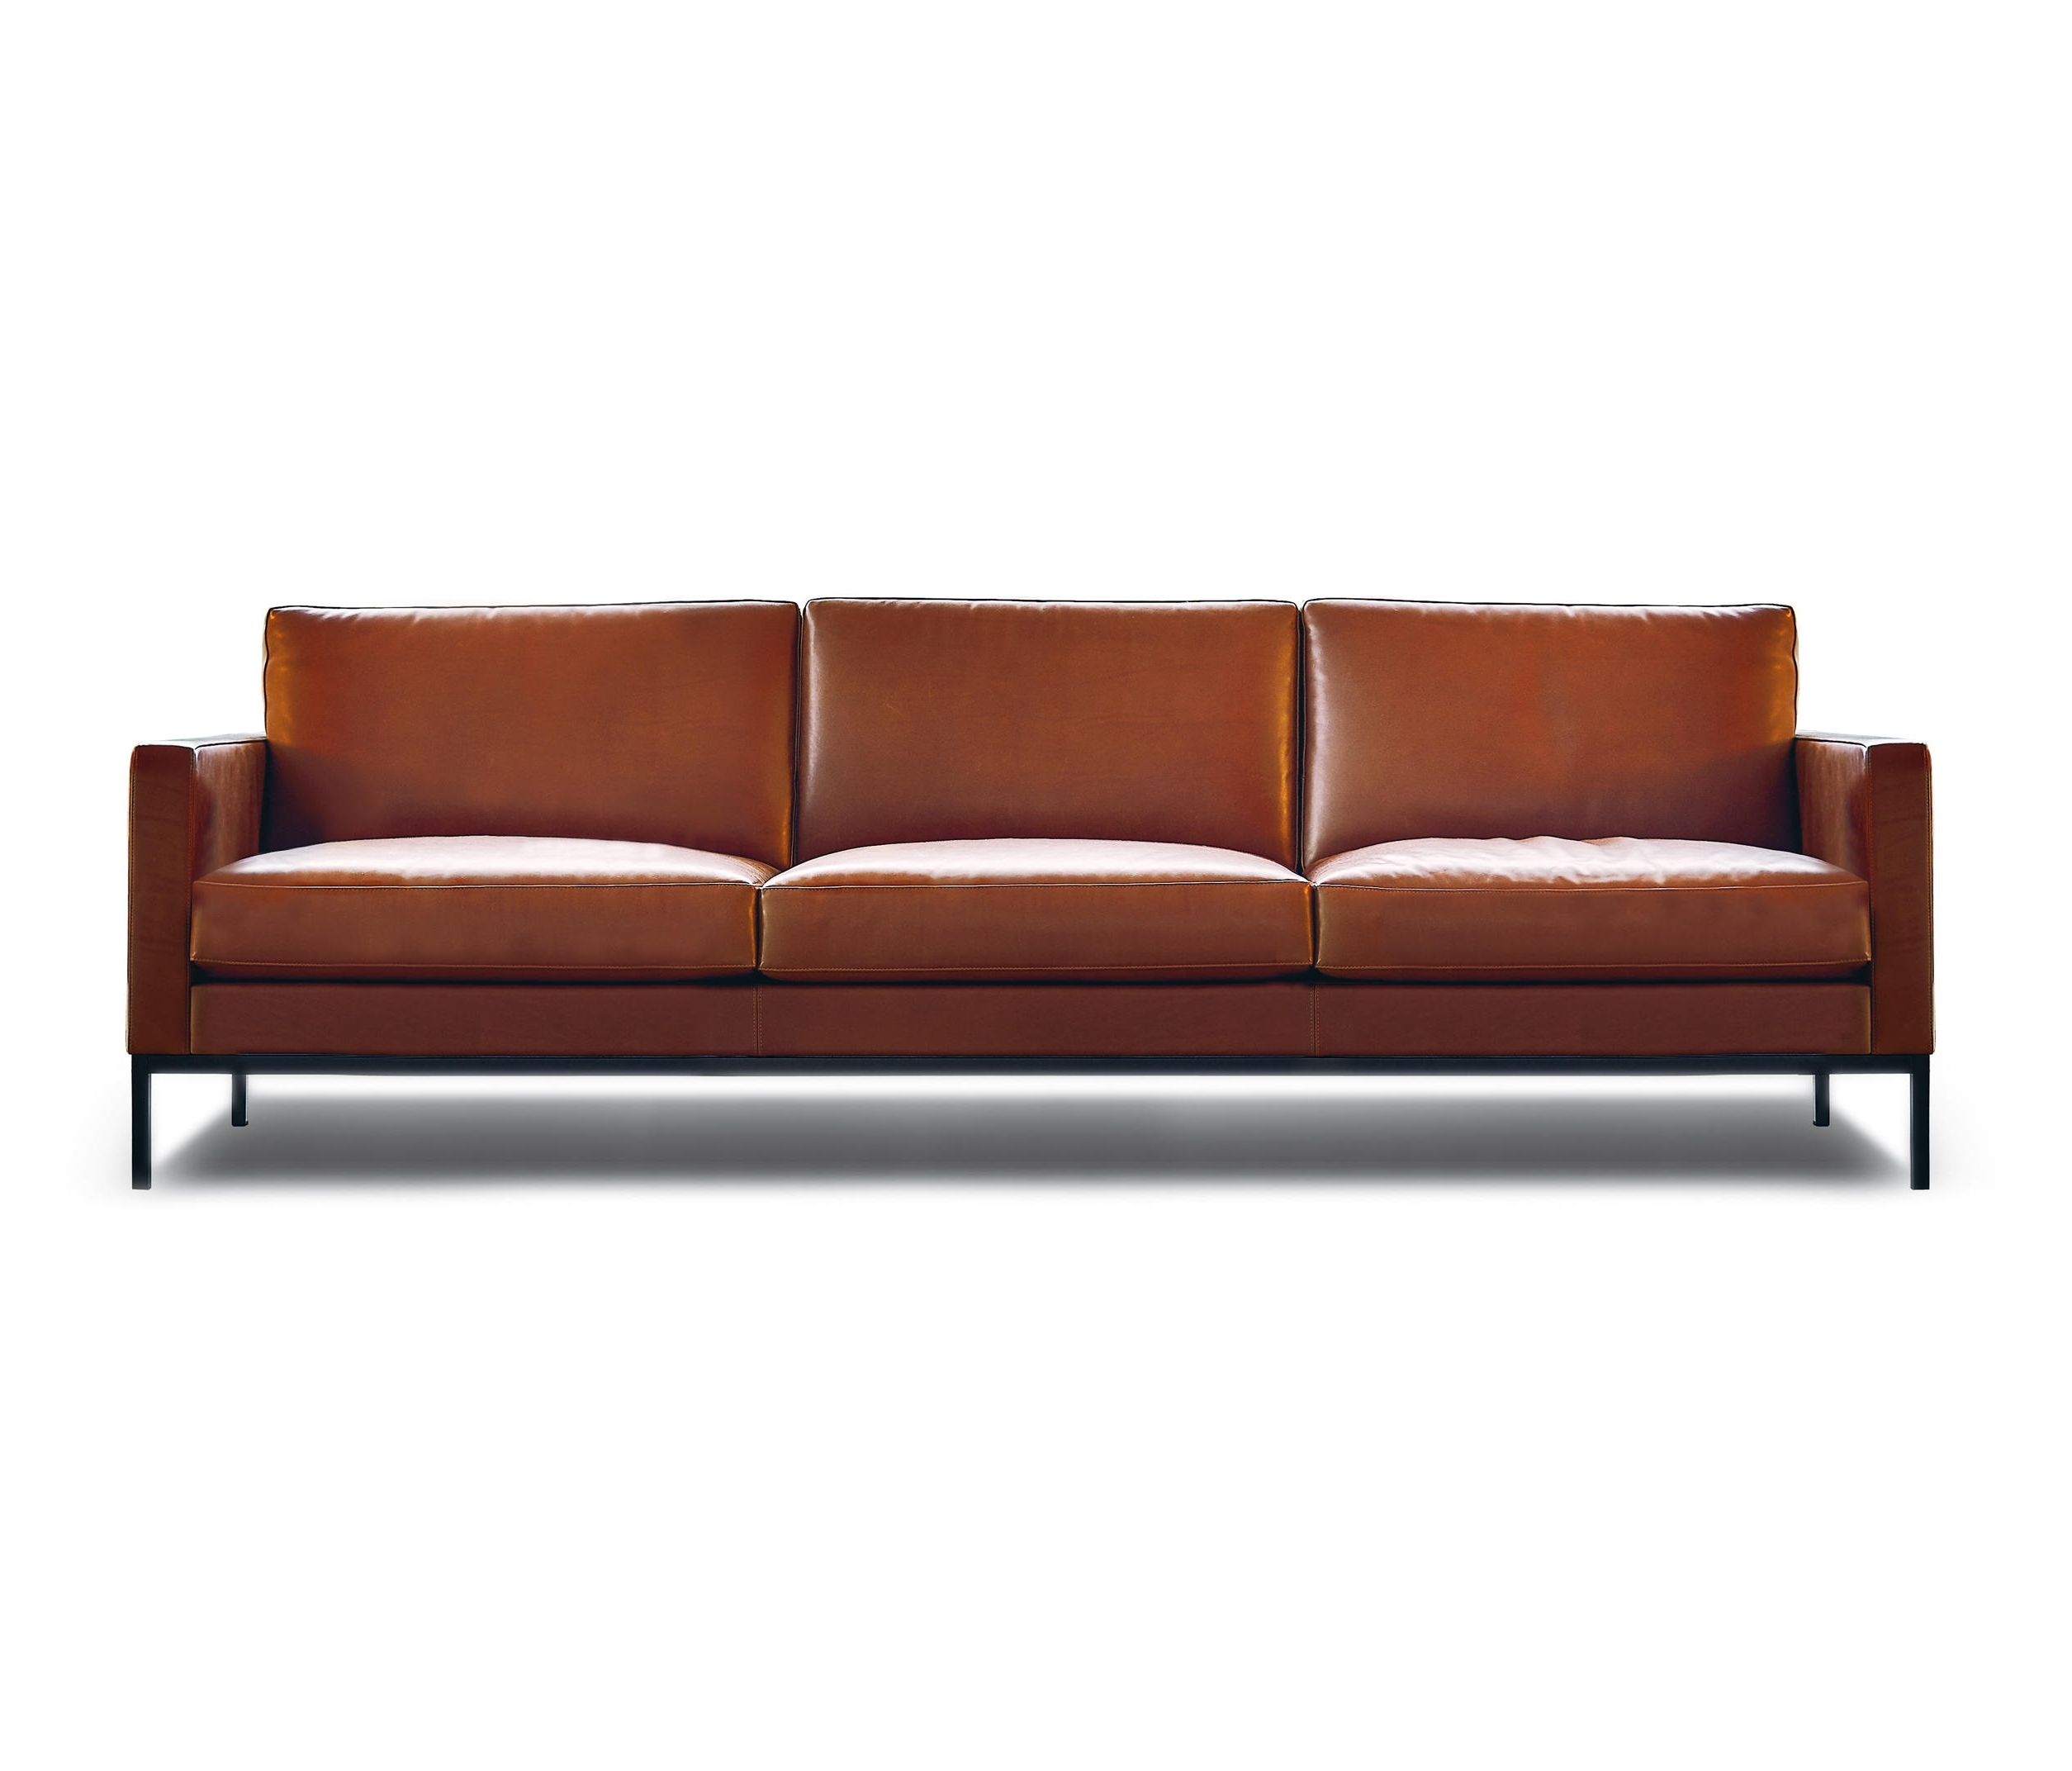 Florence Large Sofas Pertaining To Widely Used Florence Knoll Lounge 3 Seat Sofa – Lounge Sofas From Knoll (View 10 of 20)